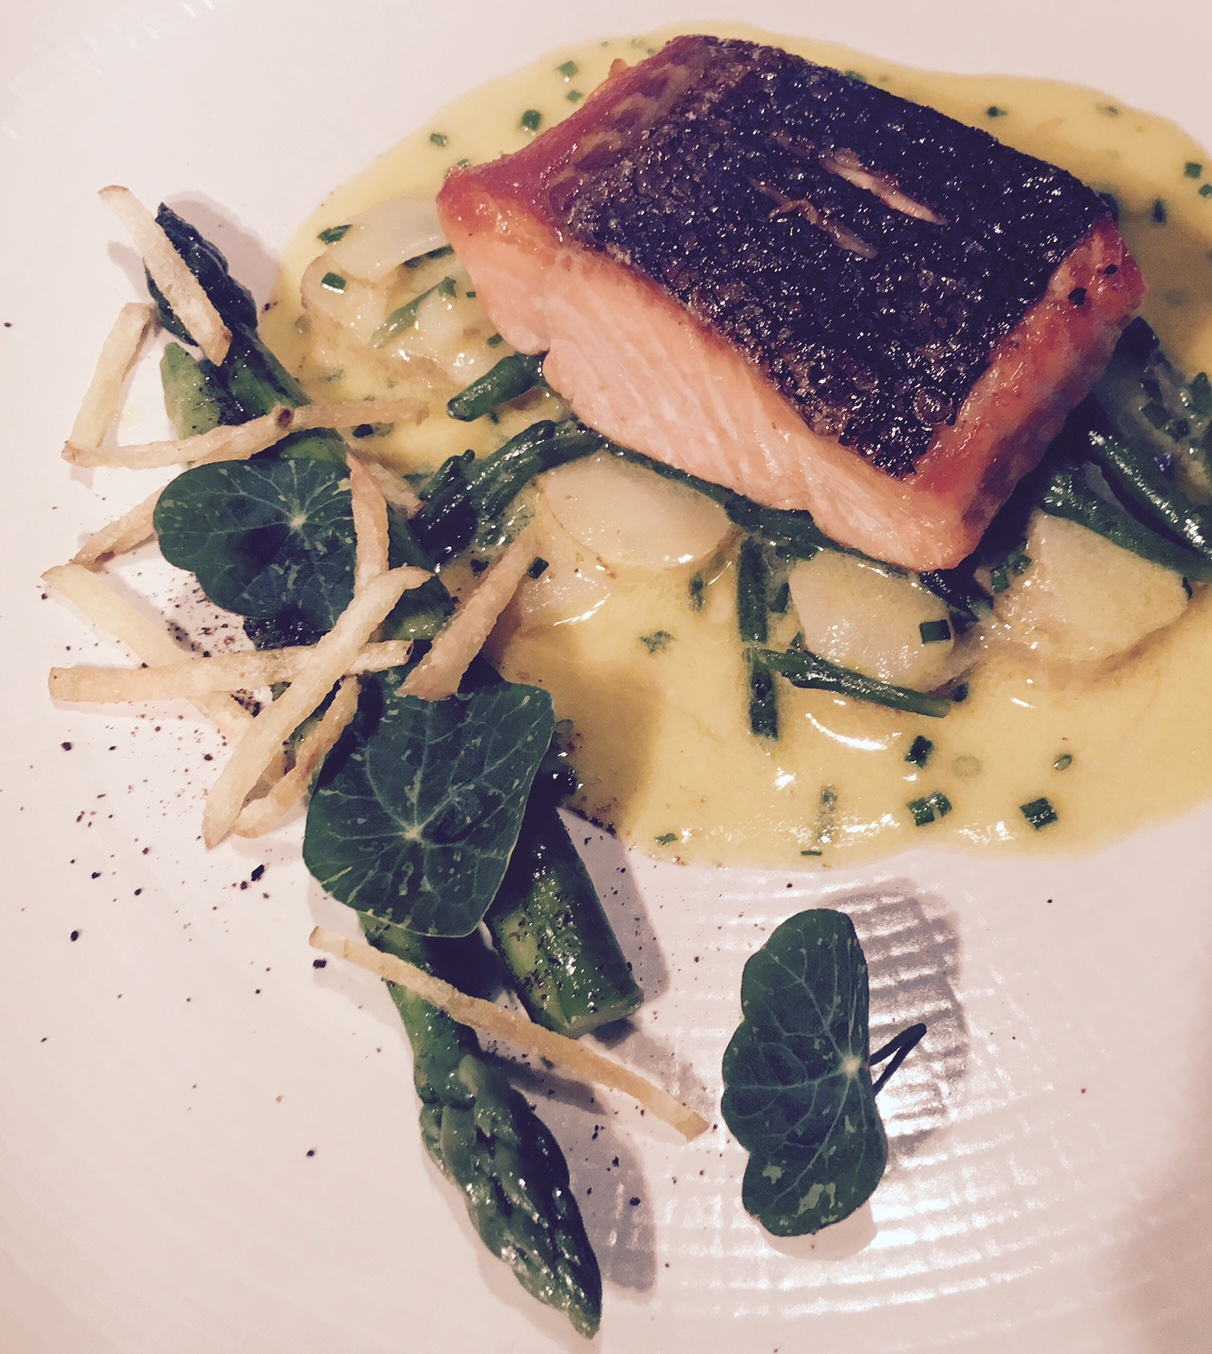 Sea Trout, Jersey Royals, Asparagus paired with the new release Kit's Coty Chardonnay, 2013